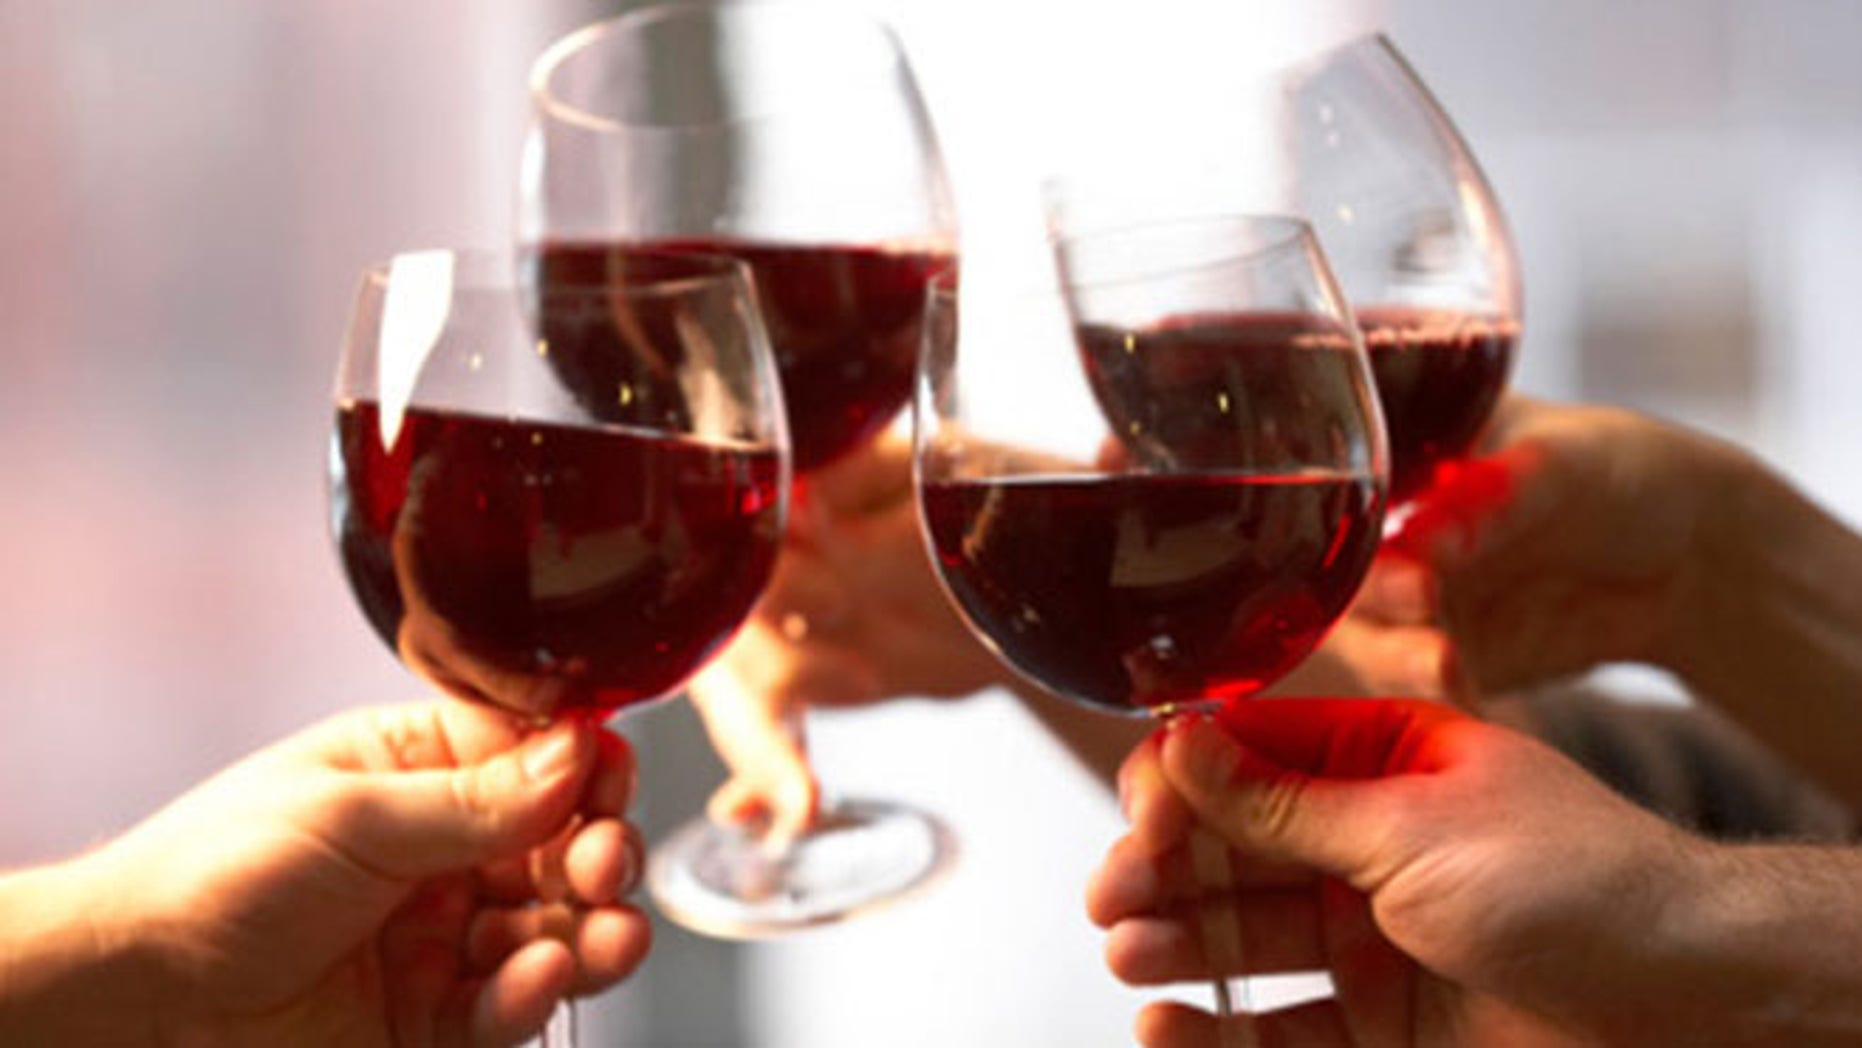 Holding a glass the right way prevents your body heat from warming the wine.